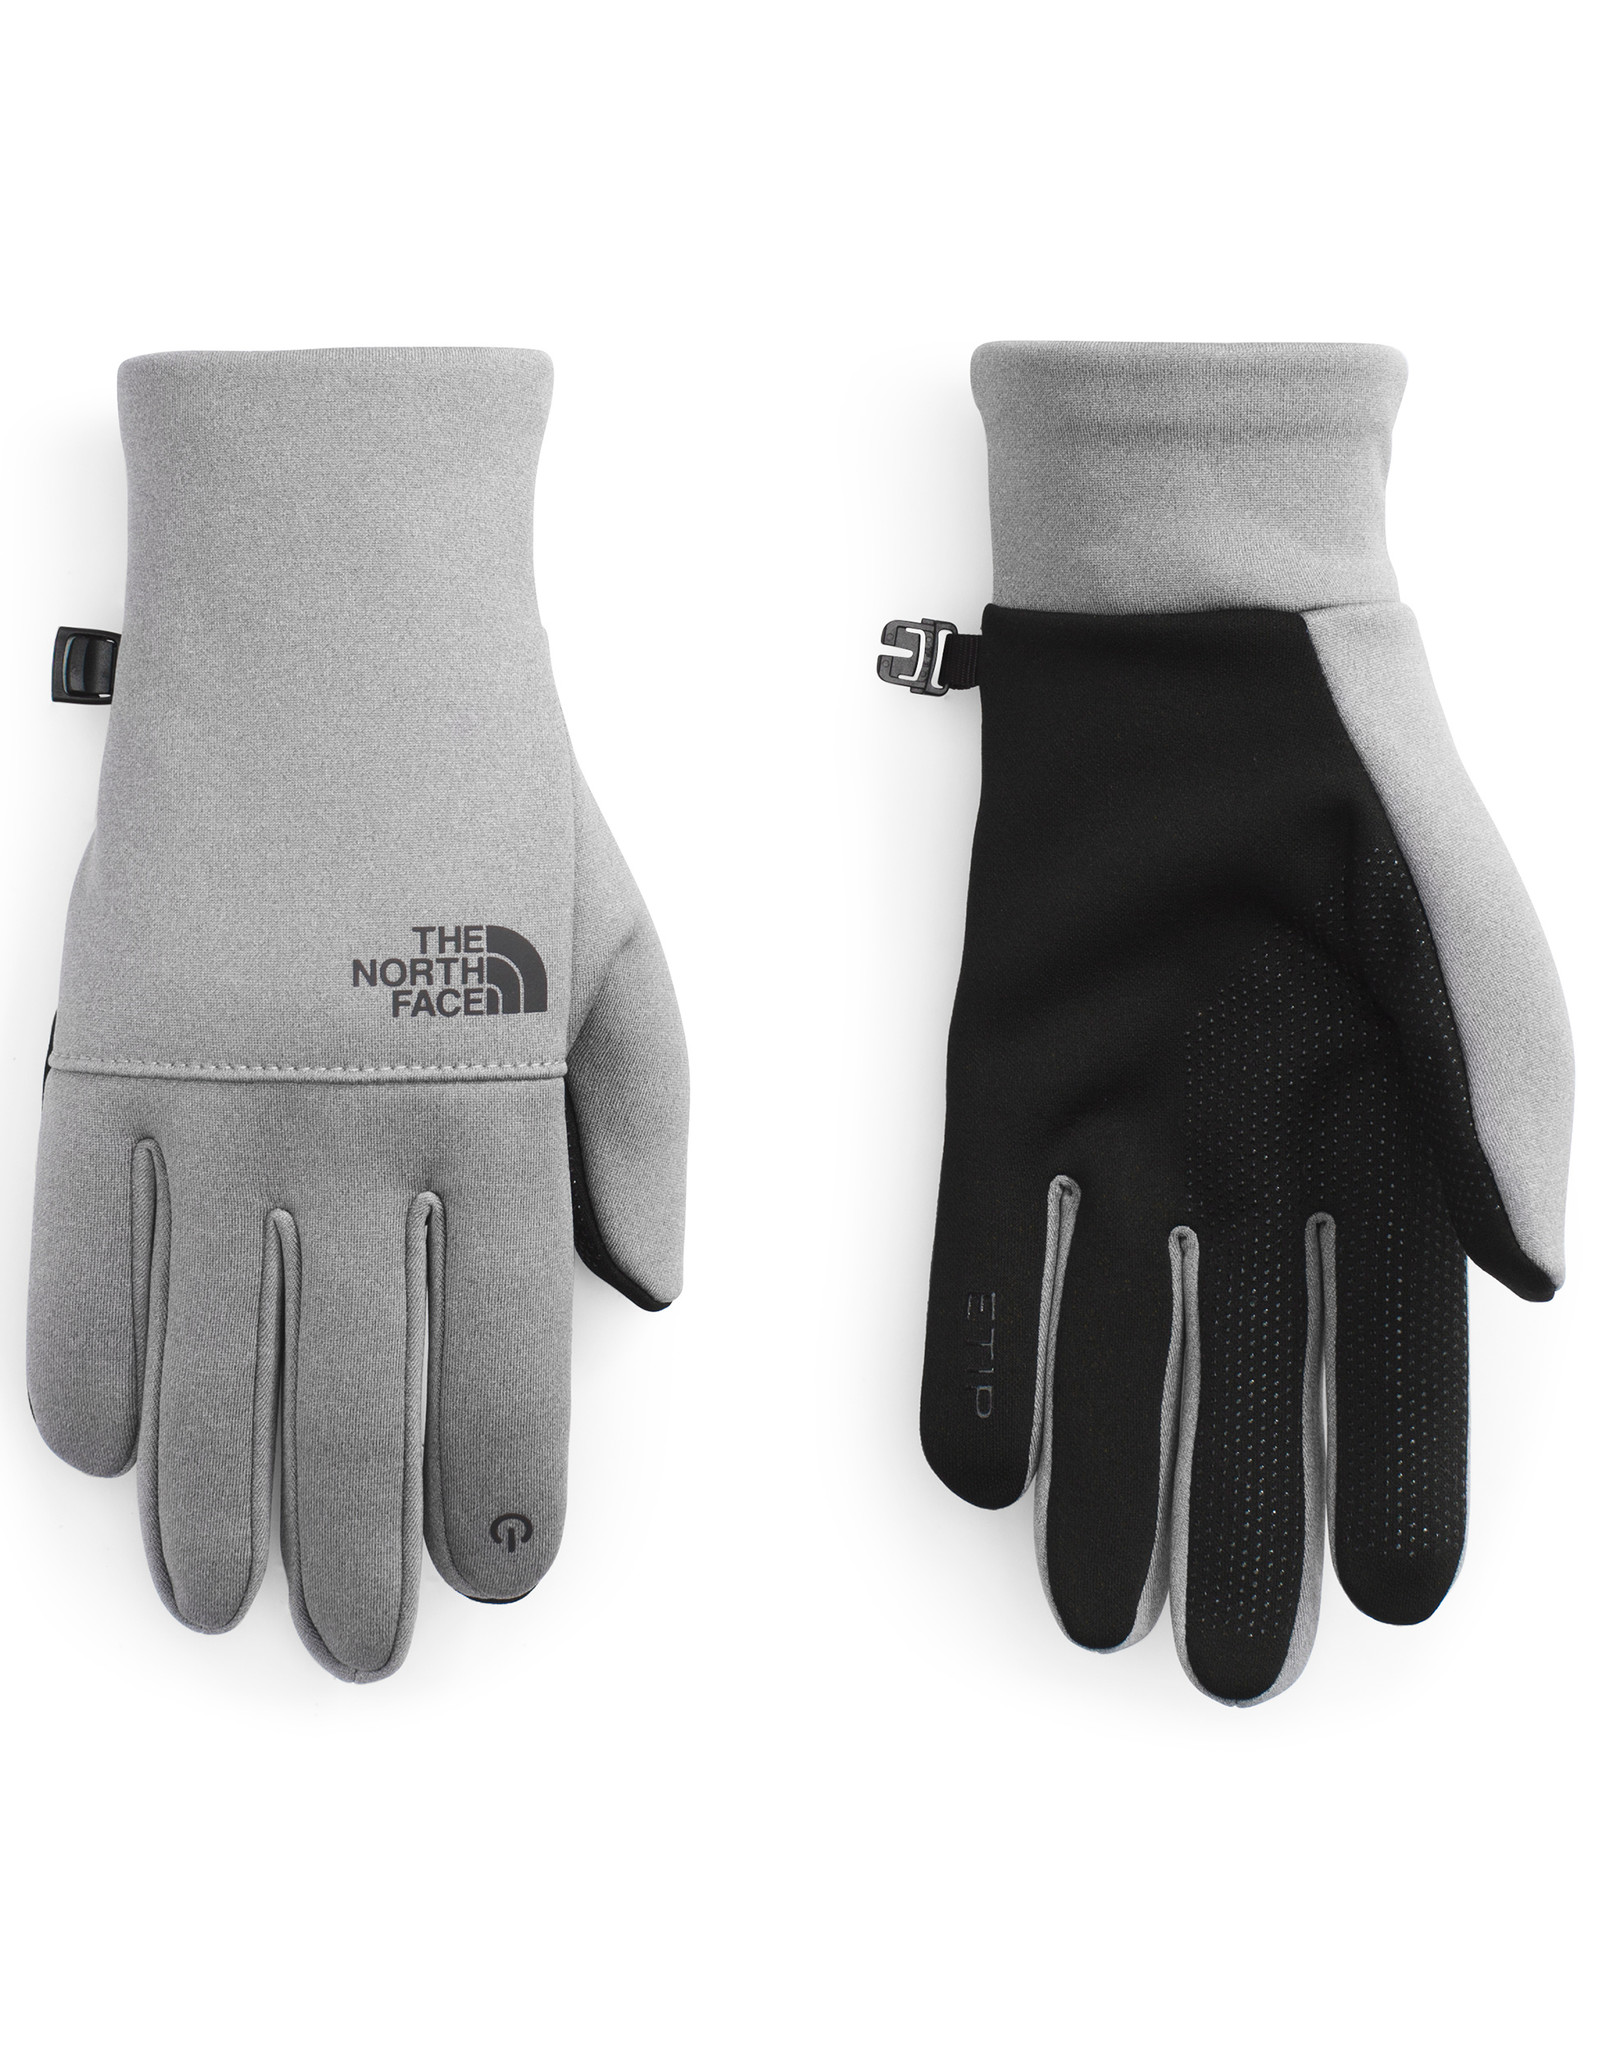 The North Face The North Face Women's Etip Recycled Glove -W2020